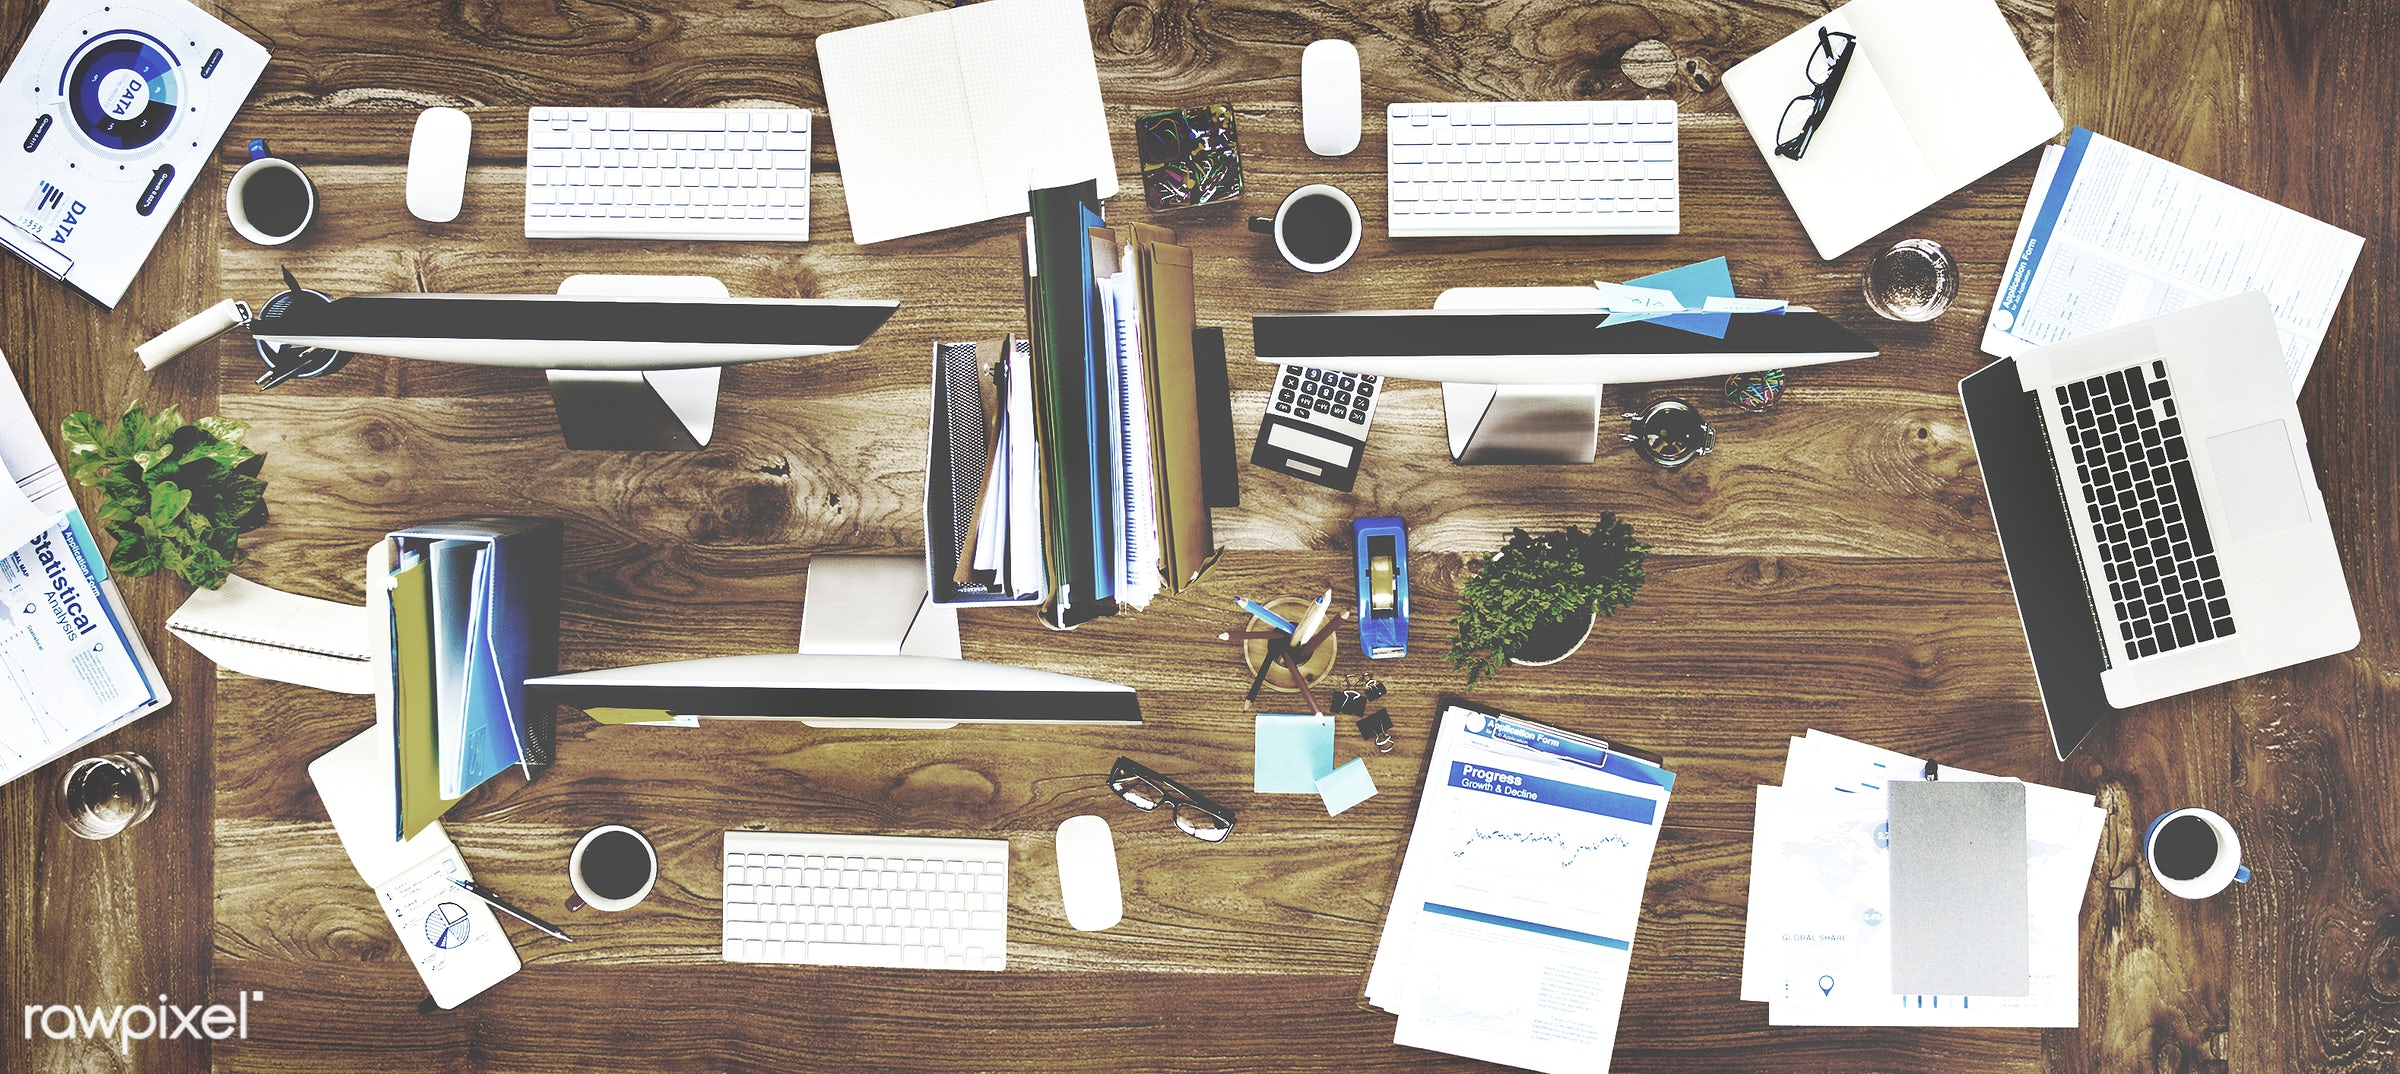 aerial view, business, computer, conference table, contemporary, desk, desktop pc, device, devices, digital, digital device...